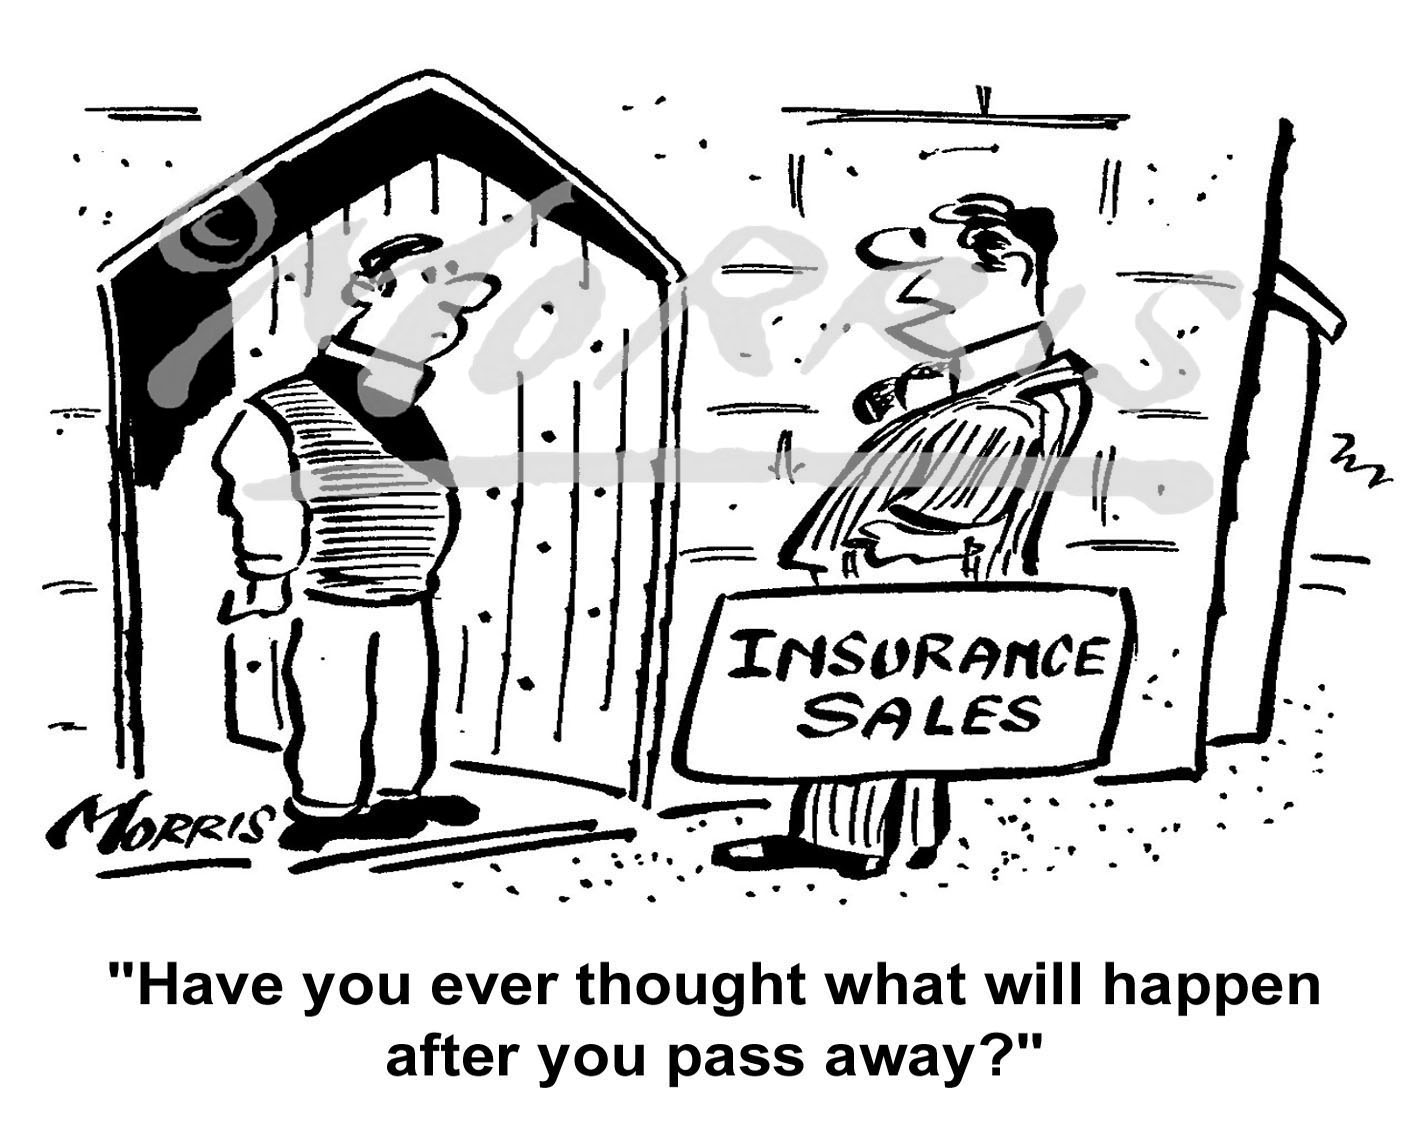 Insurance cartoon, insurance sales cartoon – Ref: 1375bw